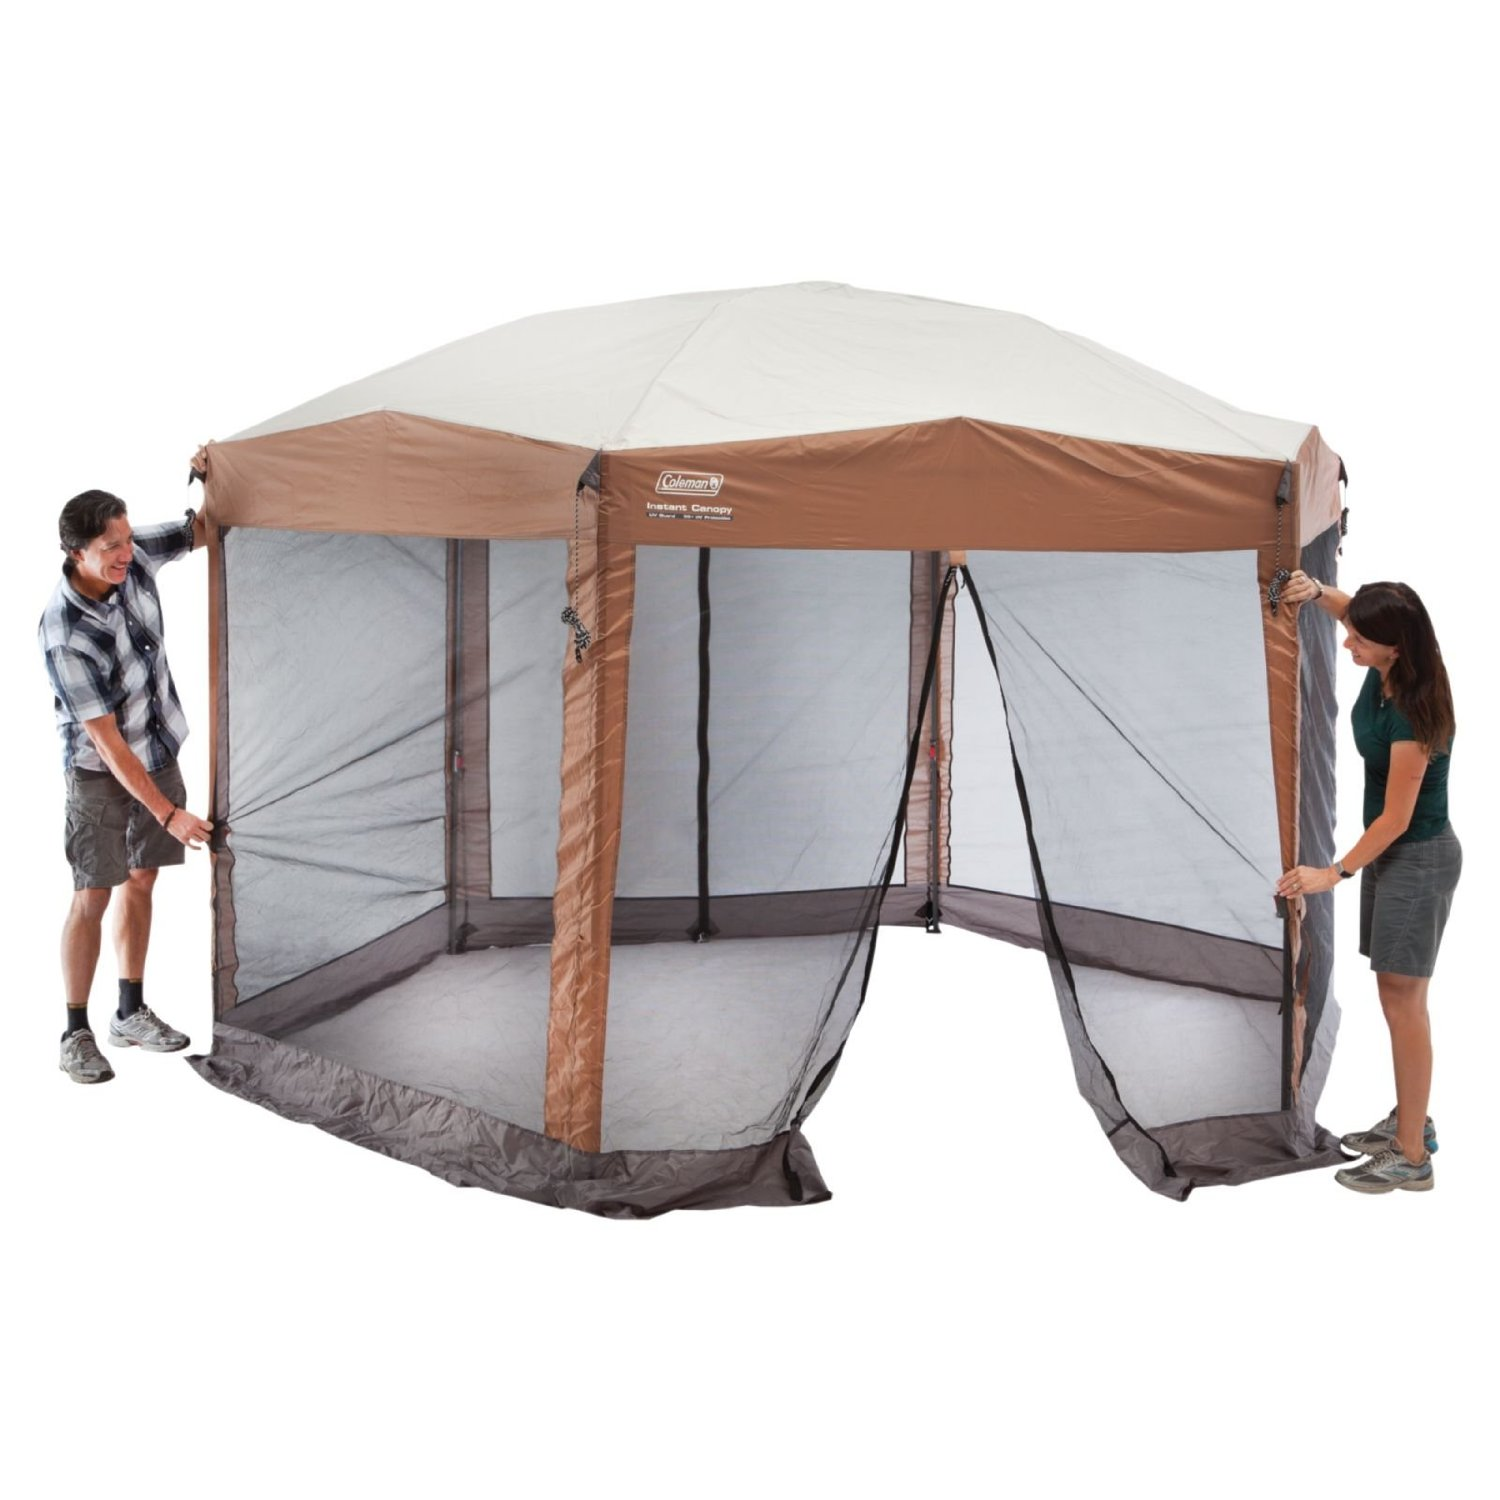 Coleman Back Home 12 x 10-Foot Instant Screen House Hexagon Canopy | 2000028003 - Walmart.com  sc 1 st  Walmart : deck canopy with screen - memphite.com